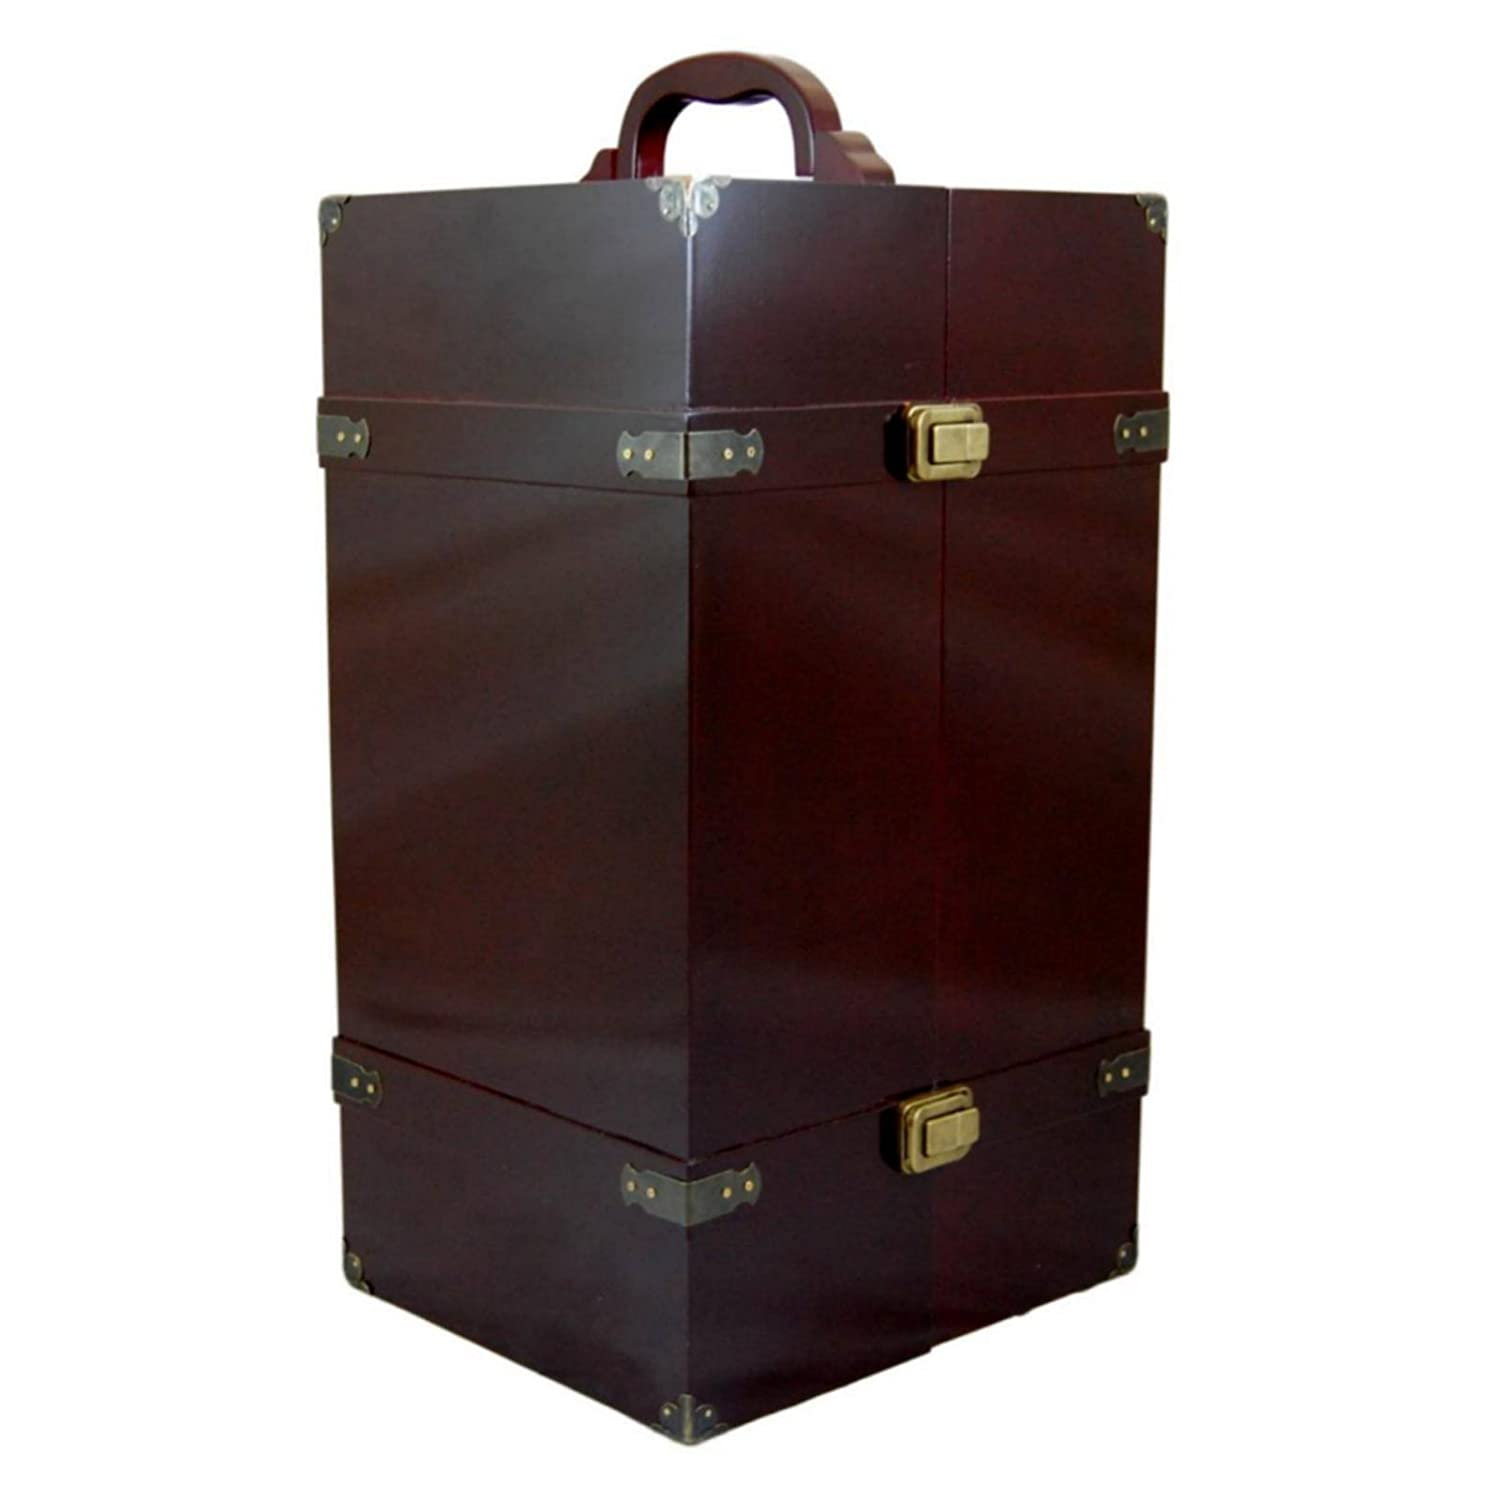 Shoes /& Accessories.Mahogany Stained Wood with Removable Vanity The Queens Treasures Doll Trunk Storage Case for 18 Inch Dolls Stool Plus 4 Clothing Hangers The Queen/'s Treasures ® AGWWV-M Clothing